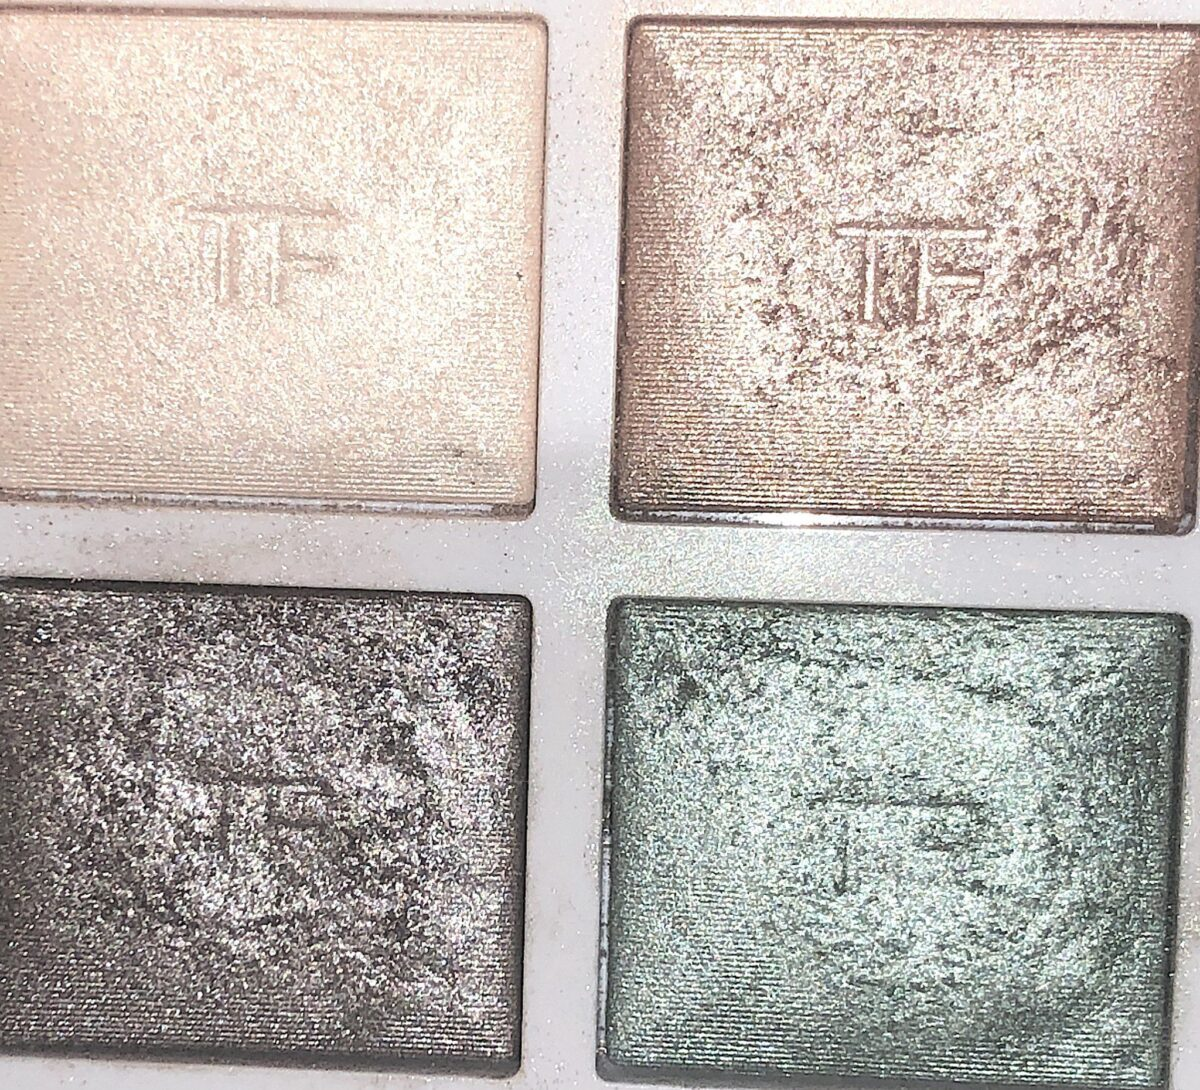 THE SHADES IN THE SOLEIL ET LUNE PALETTE